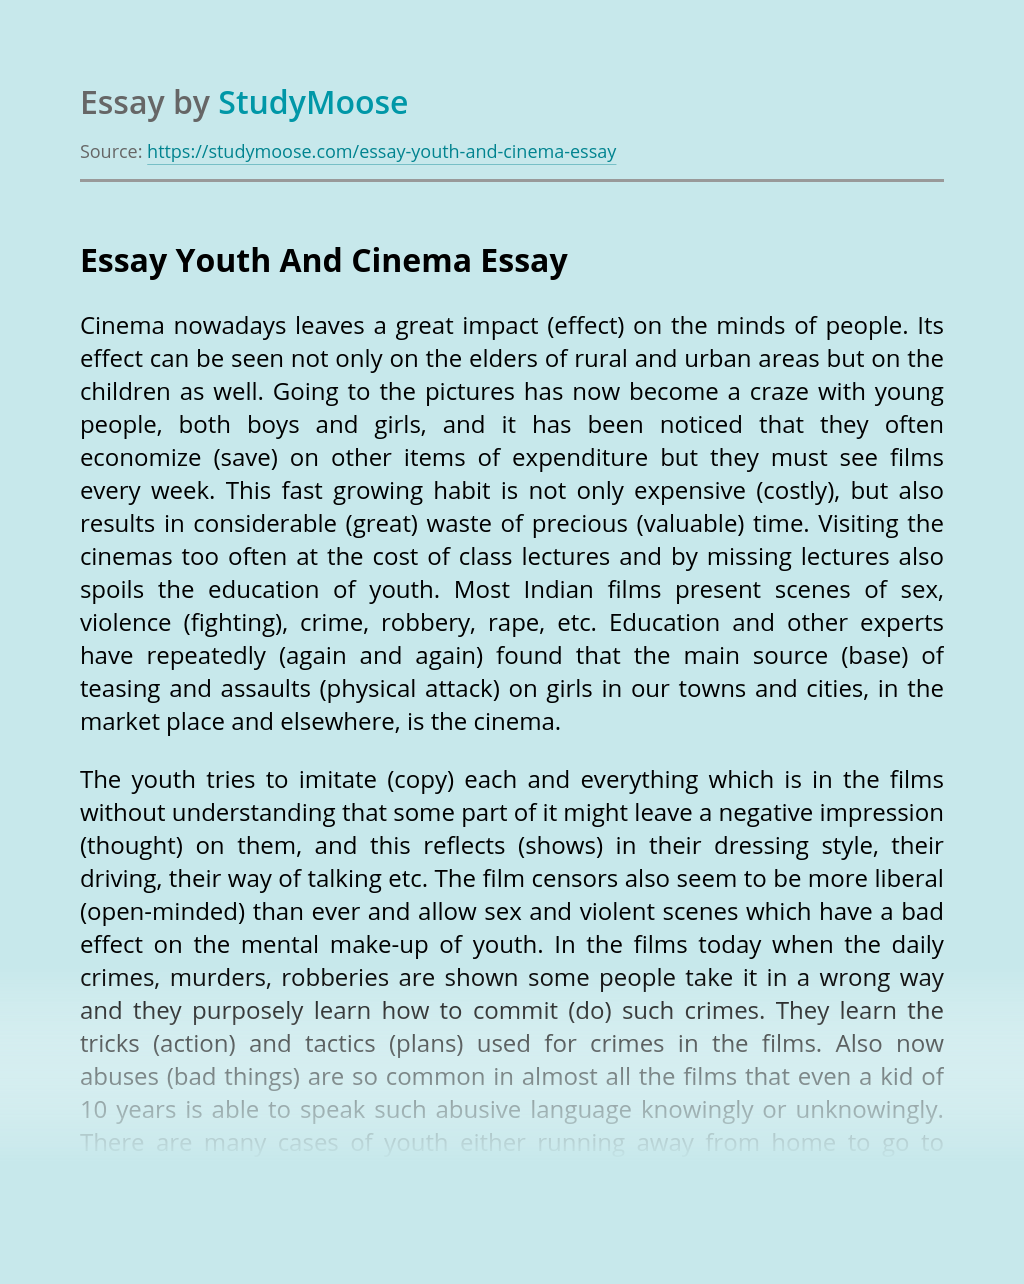 Essay Youth And Cinema